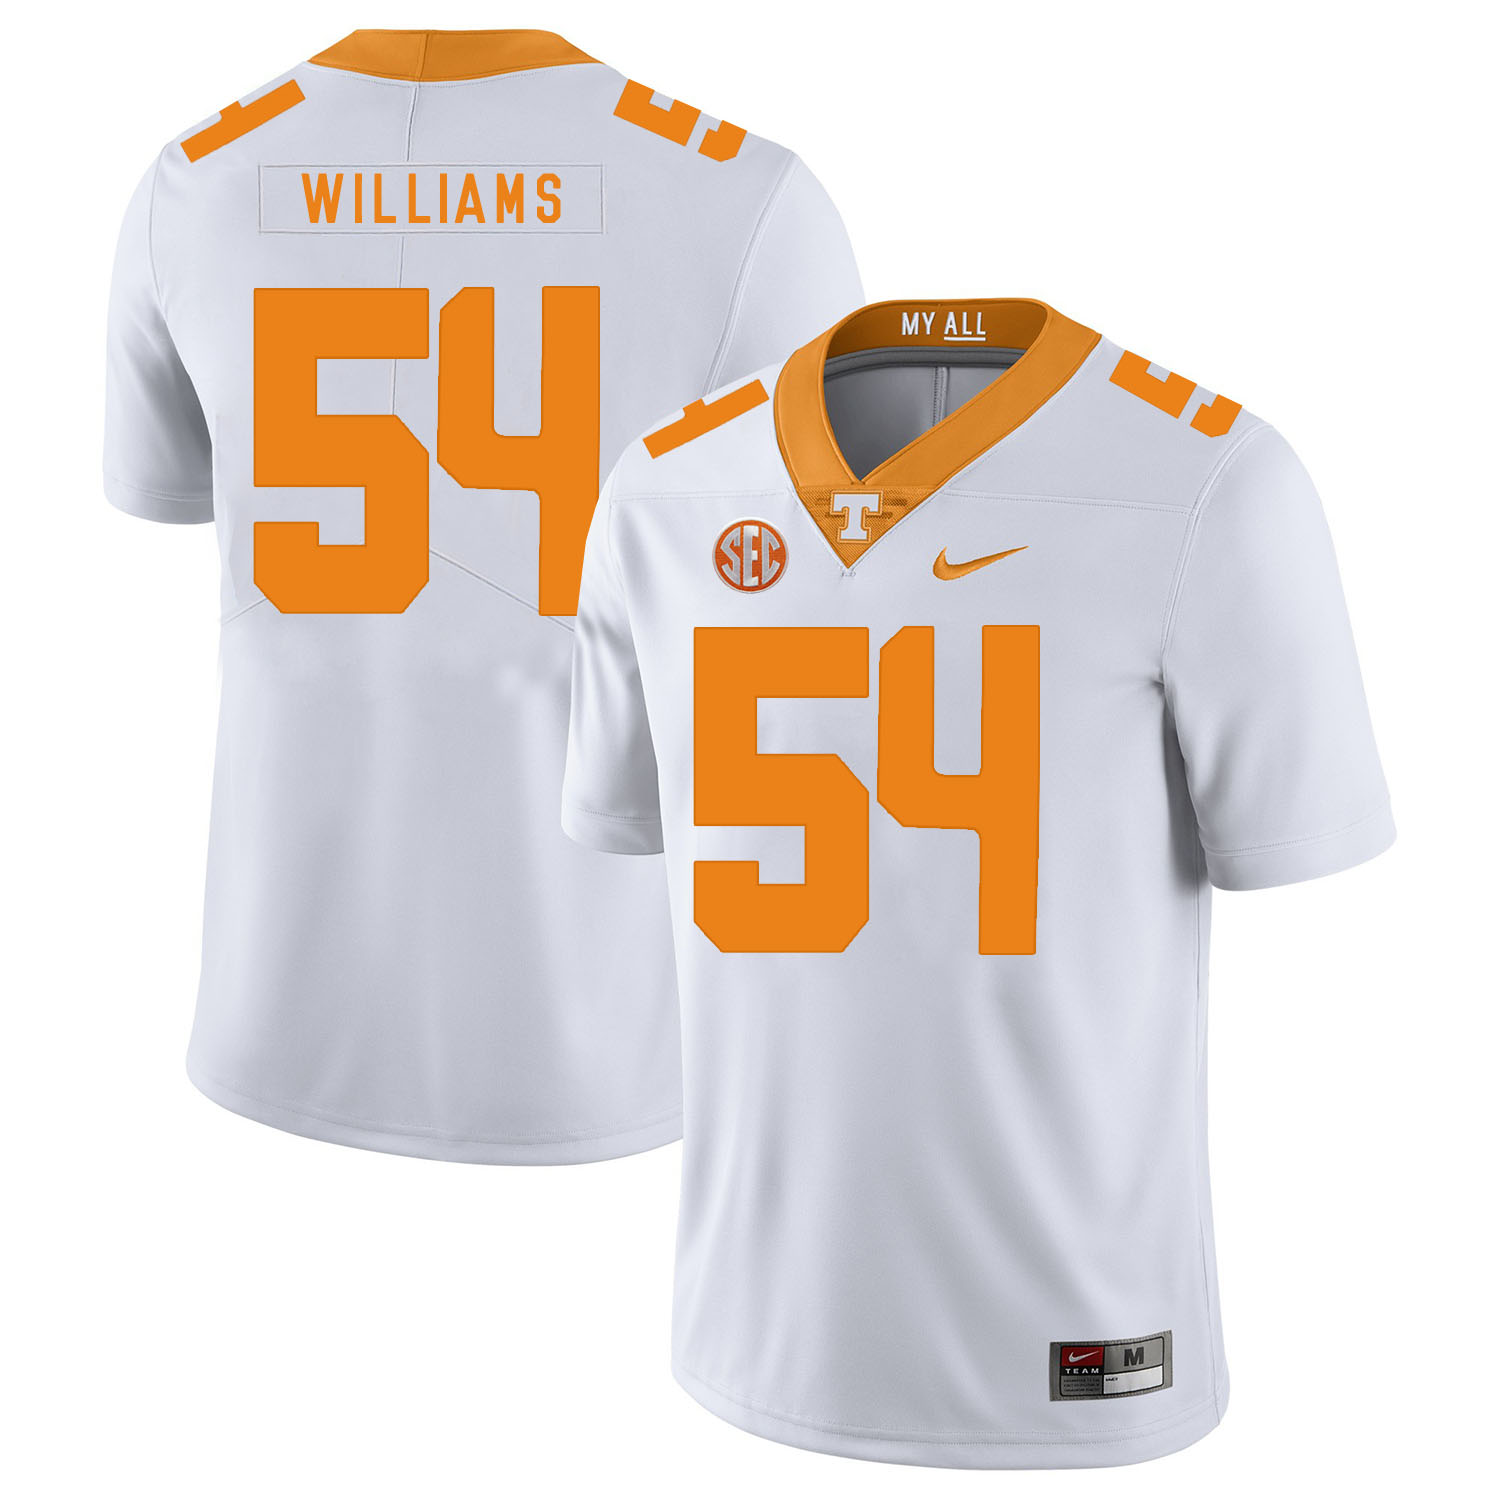 Tennessee Volunteers 54 Jordan Williams White Nike College Football Jersey